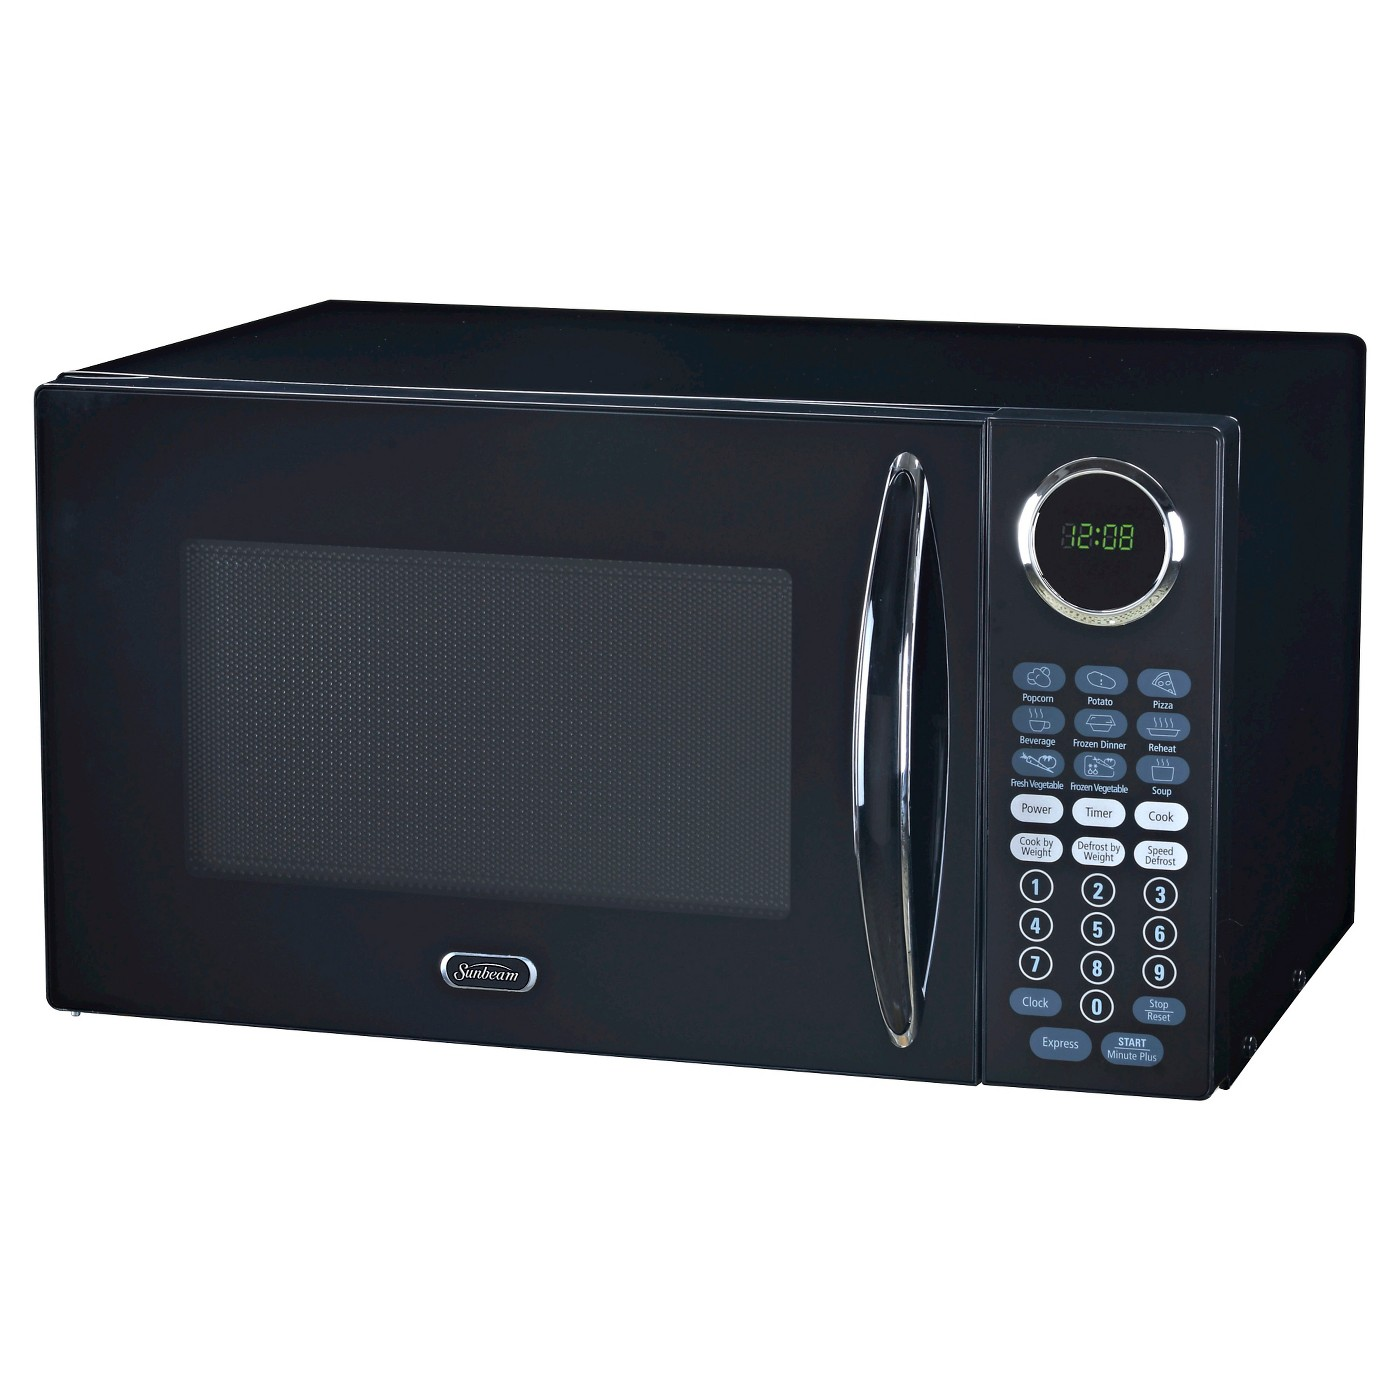 Save 14% on Sunbeam 0.9 cu ft 900 Watt Microwave